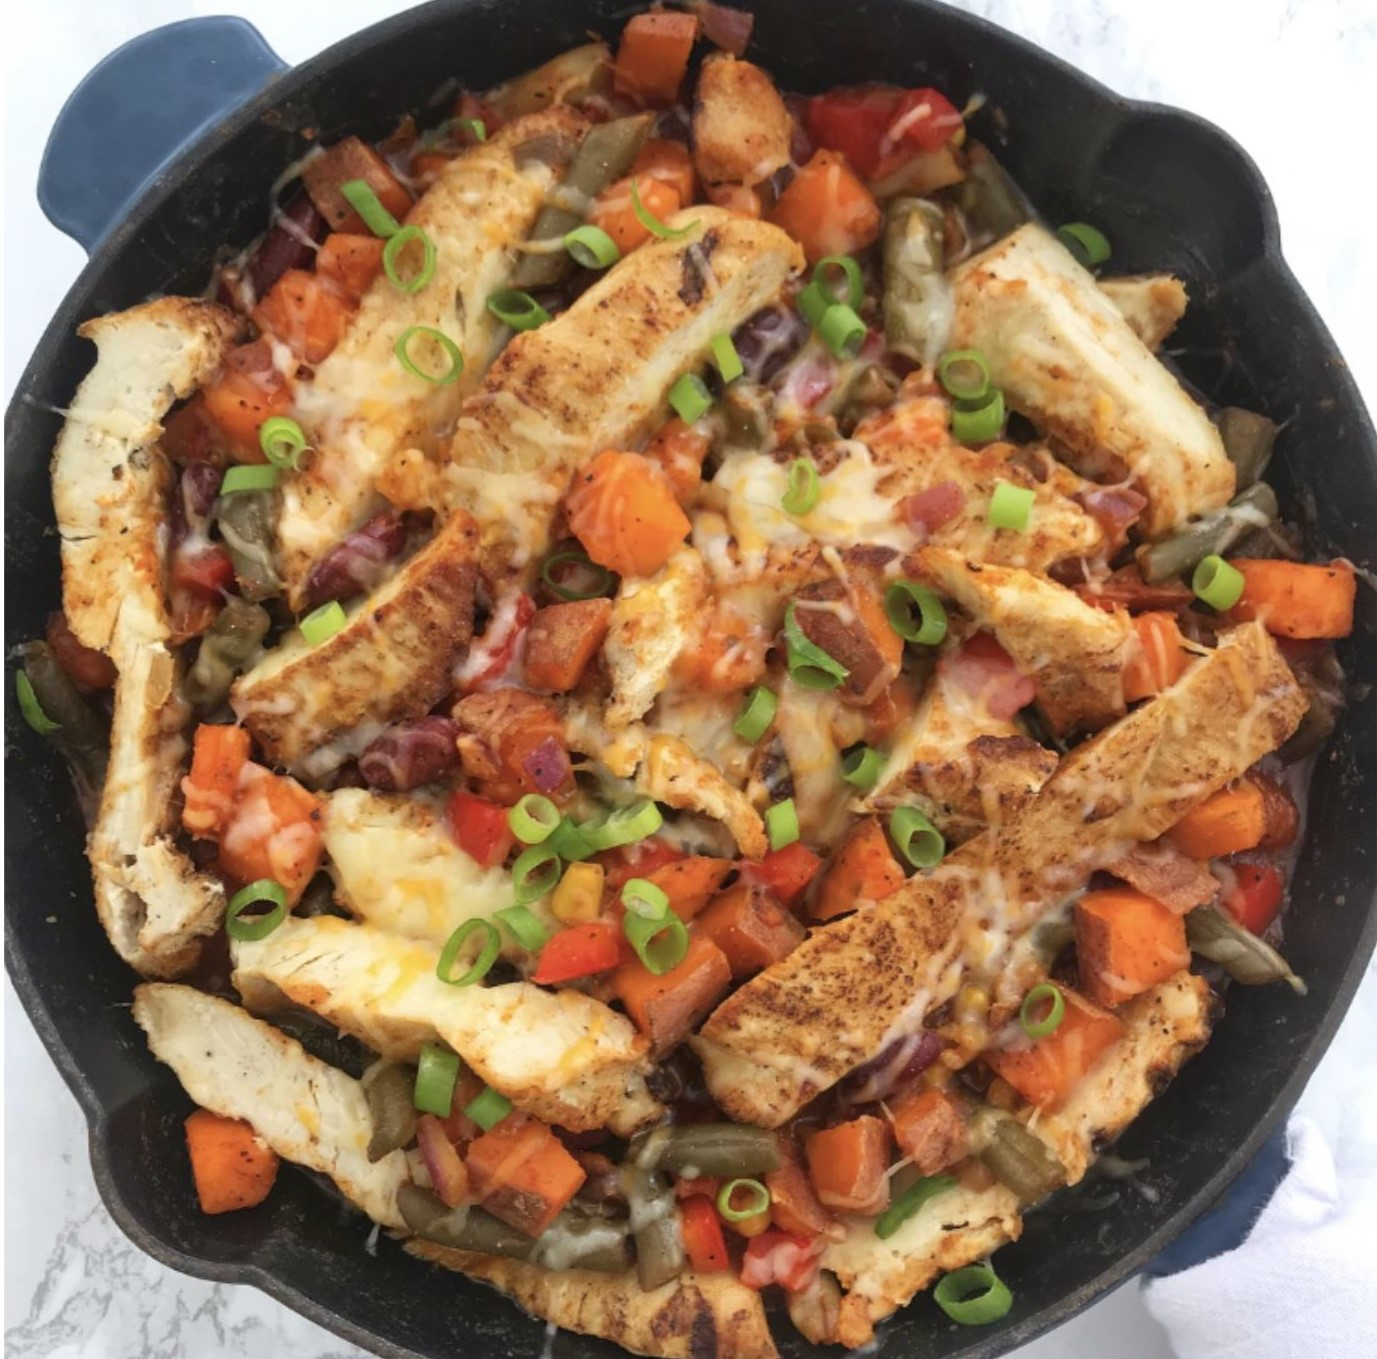 Southwest 3 Bean & Chicken One Pan Dinner